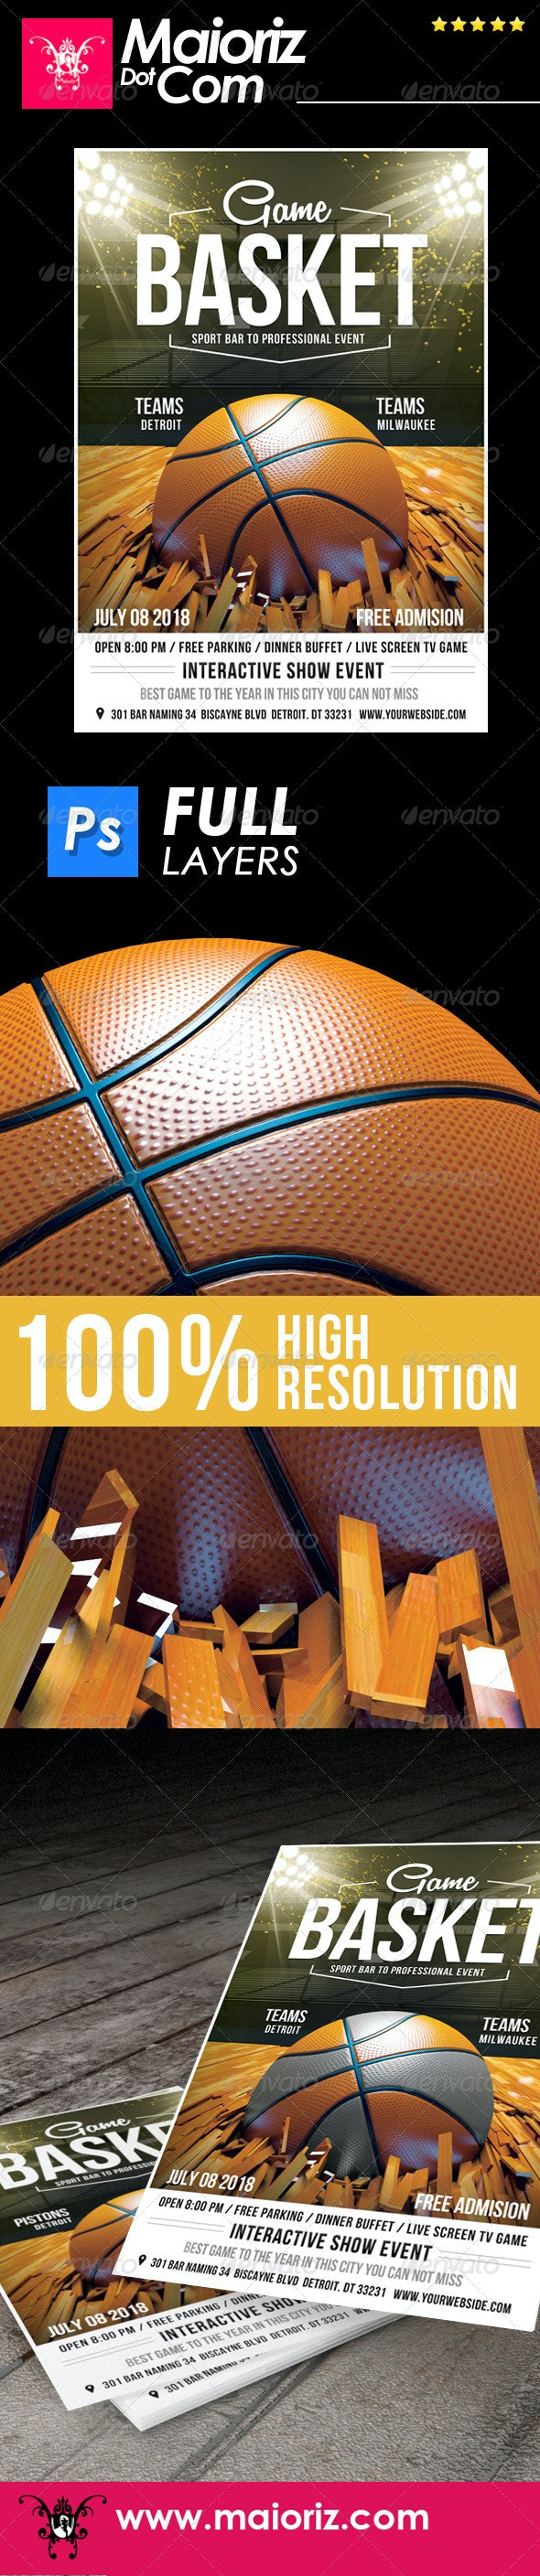 Basketball Event Flyer - Sports Events